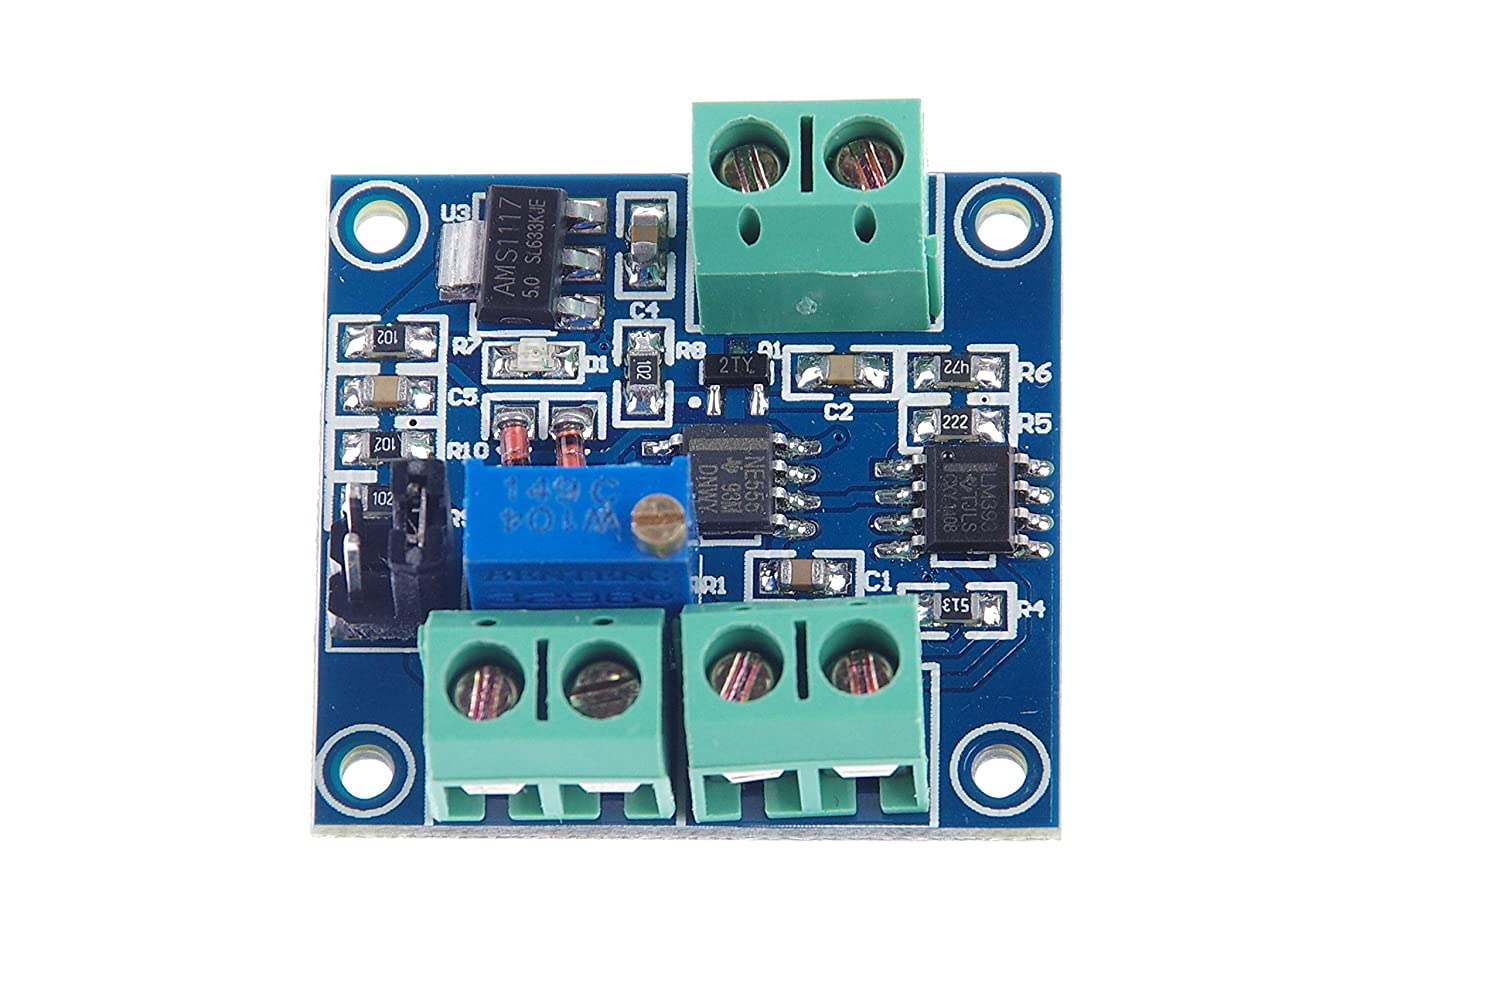 KNACRO Voltage - to - PWM module/0-5V/0-10V voltage converted to 0-100% on